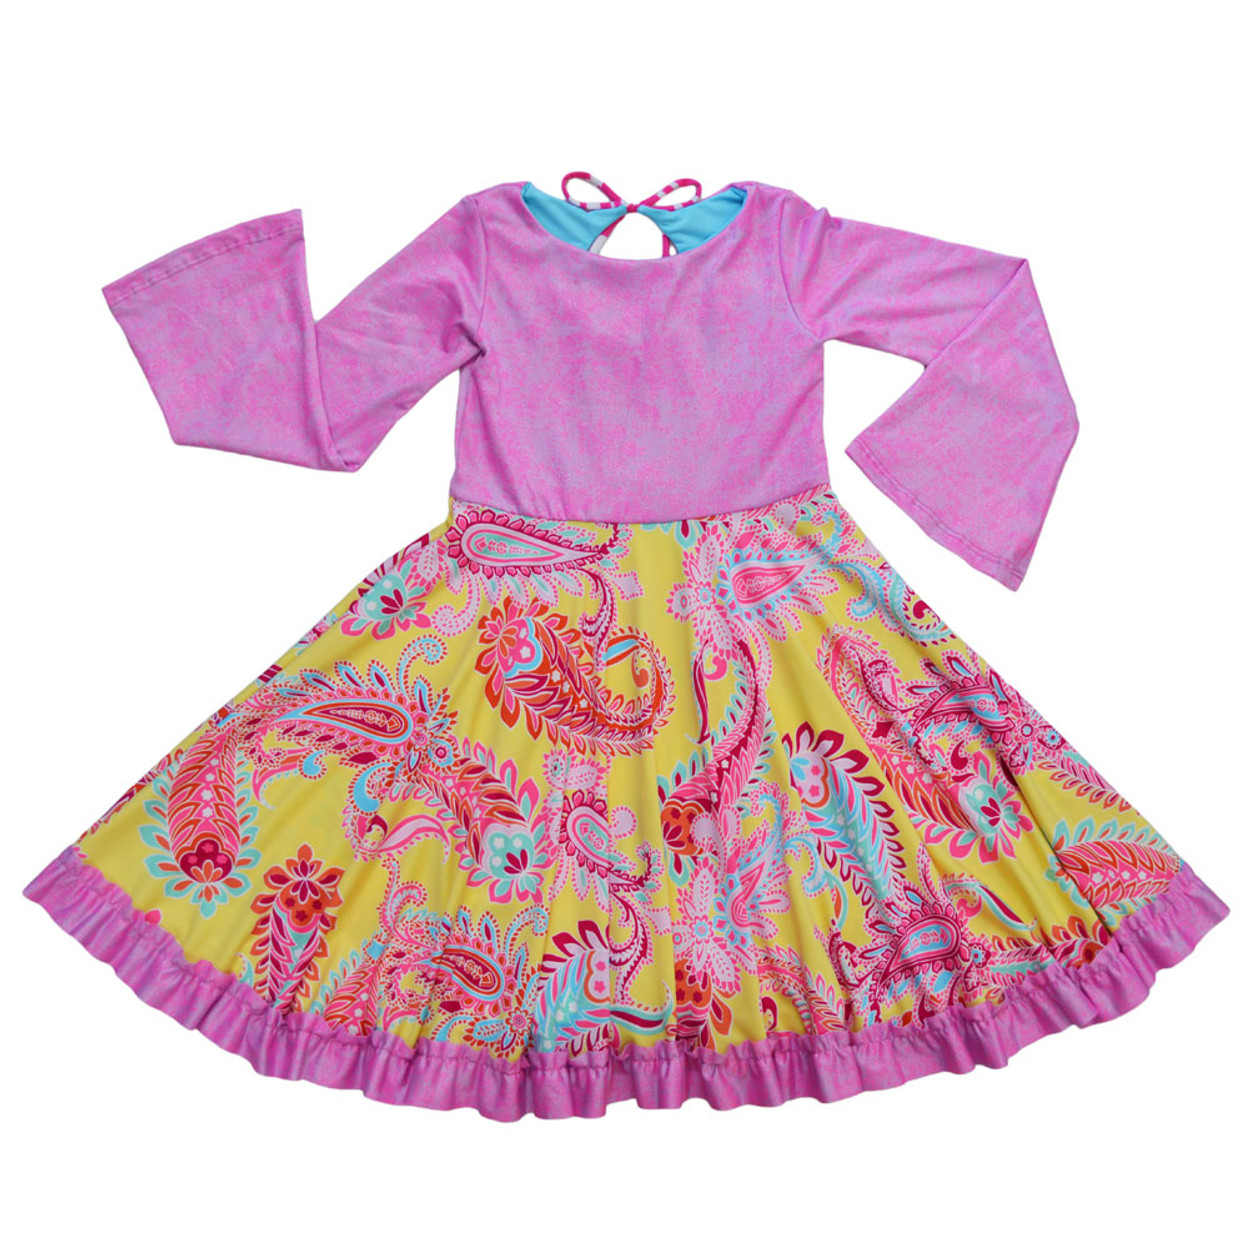 6777ac244 Twirly Girl Pink Girls Dresses Pretty Swirly Fun Long Sleeve Holiday with  Ruffle